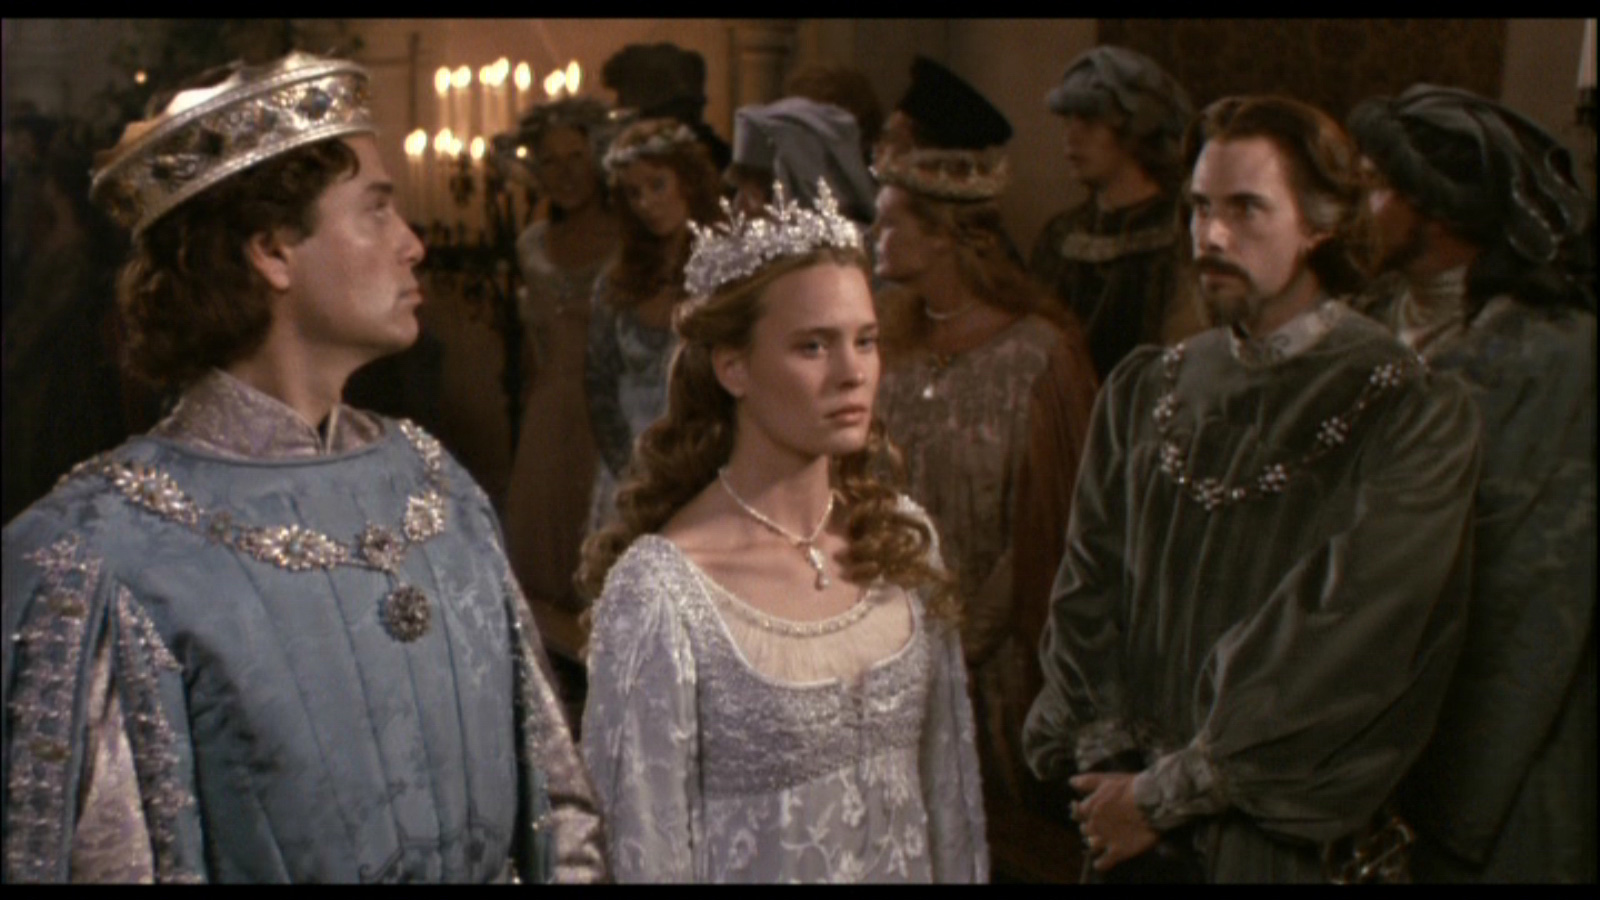 Robin Wright as Buttercup with Chris Sarandon as Prince Humperdinck and Christopher Guest as Count Rugen The Princess Bride picture image